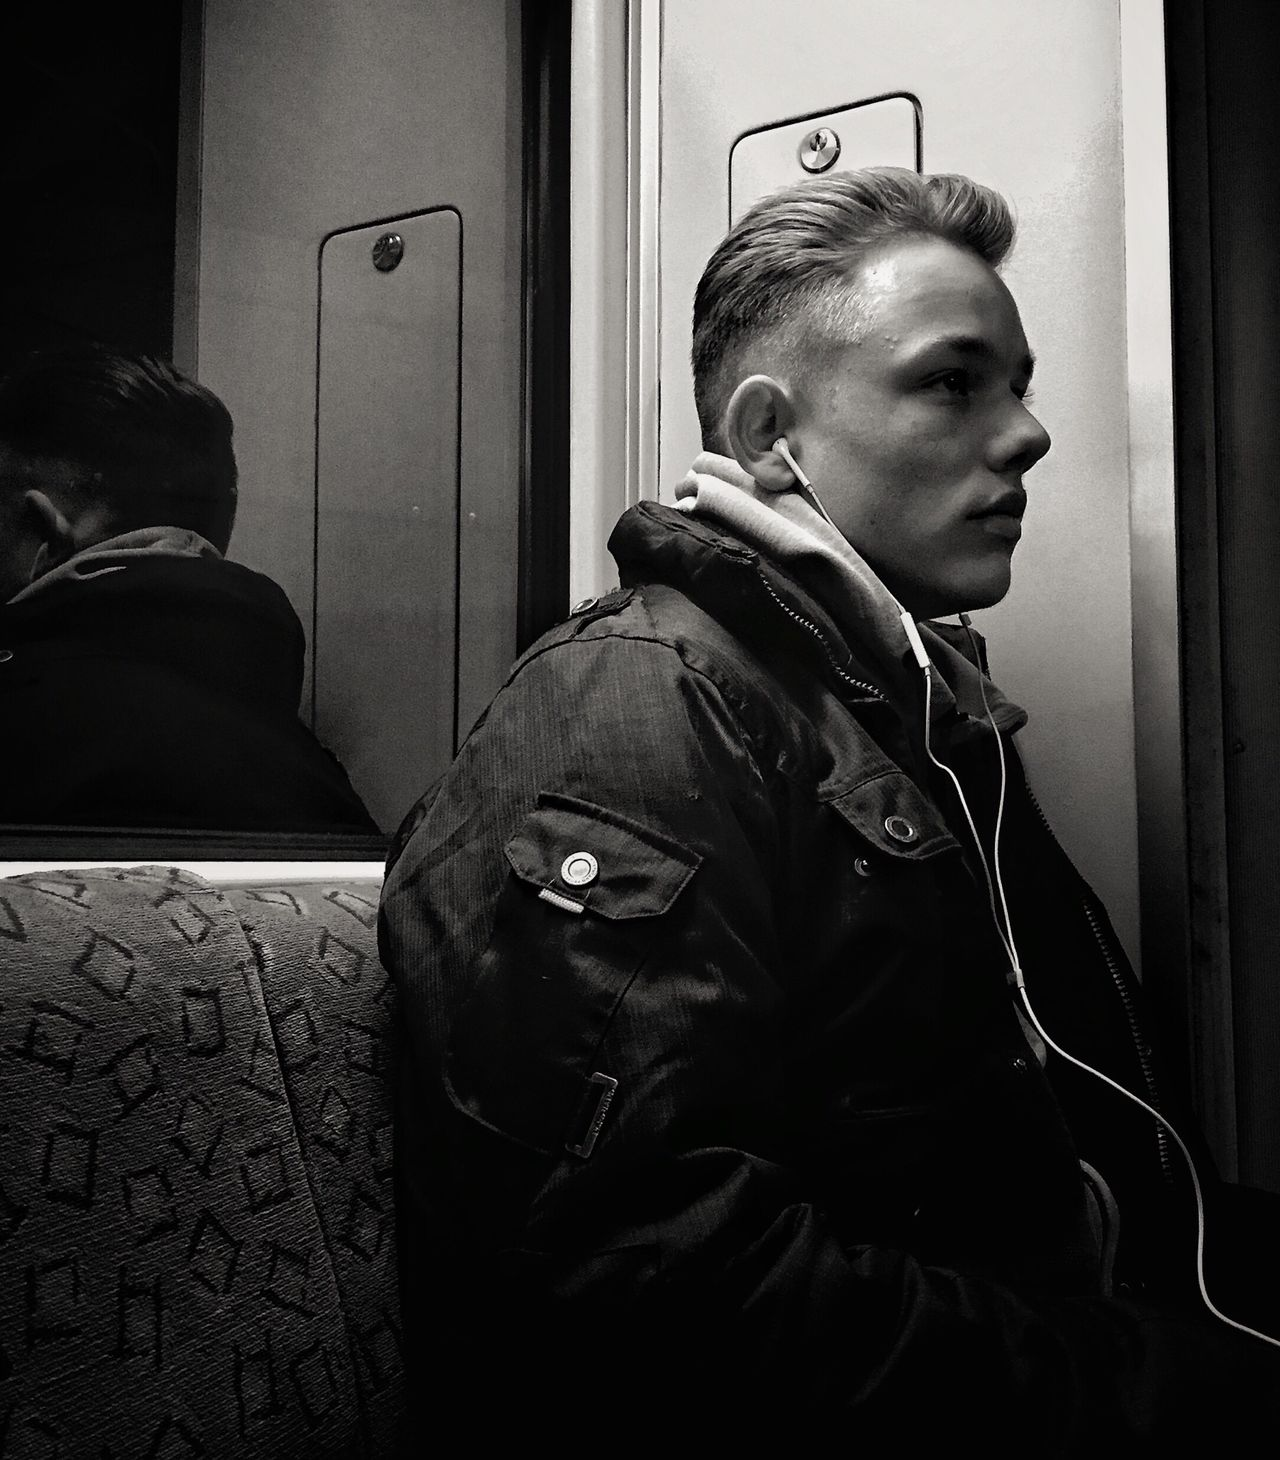 Subway Train Train - Vehicle Public Transportation Vehicle Interior Passenger Transportation Indoors  Adults Only Only Men One Person Young Adult Real People Commuter Adult Day People Train Interior Streetphotography Streetportrait Bnw Blackandwhite Berlin Myfuckingberlin Iphone6 Mobilephotography